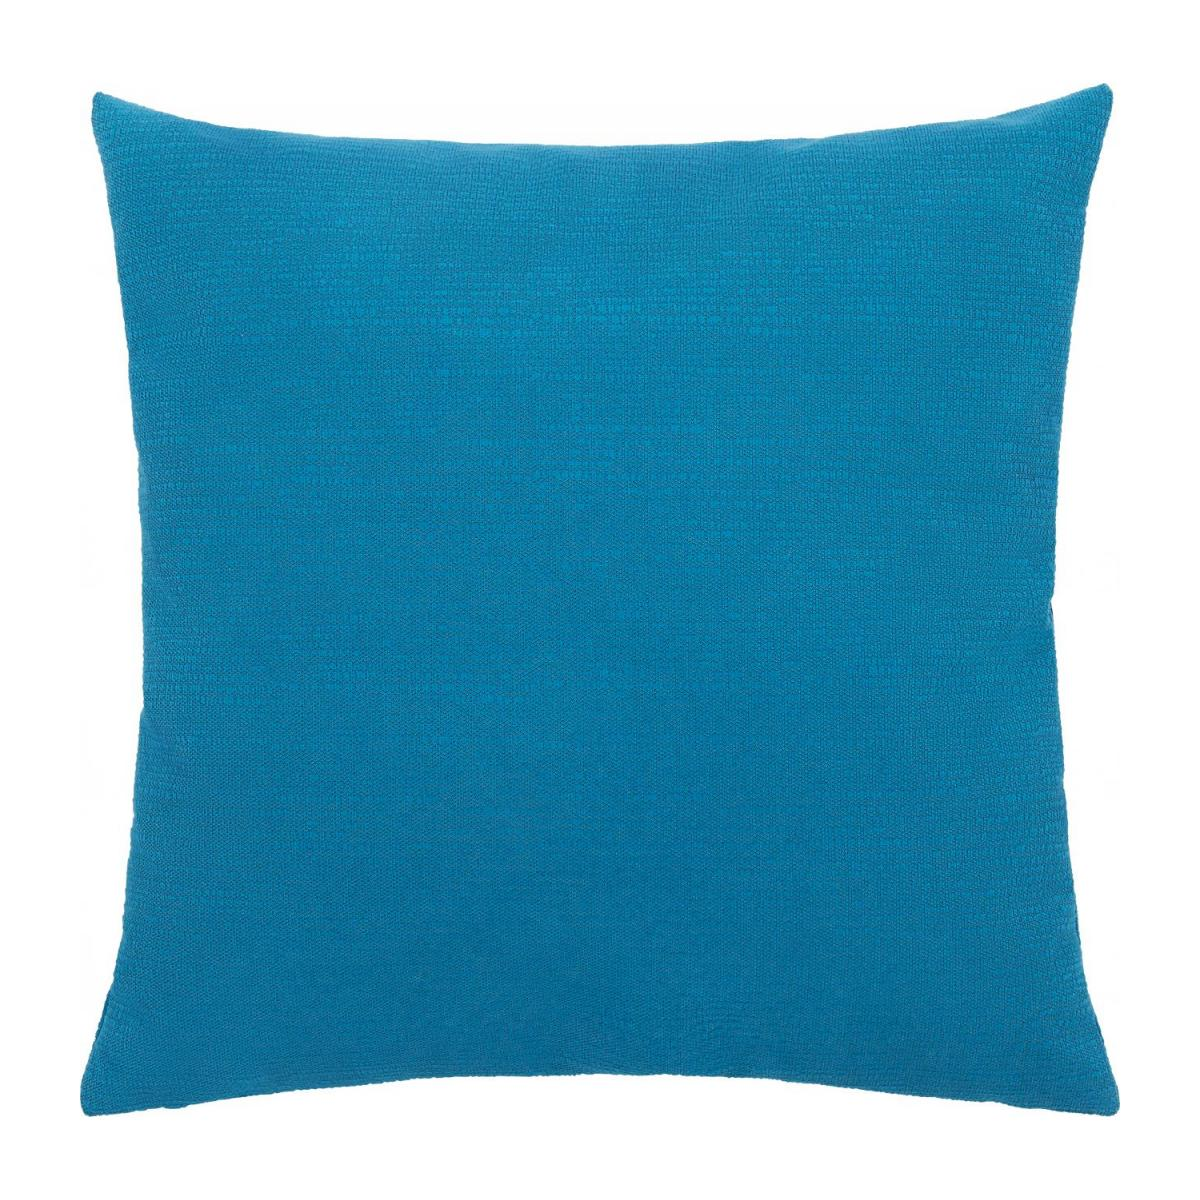 Cushion made of textured velvet 45x45cm, blue n°4